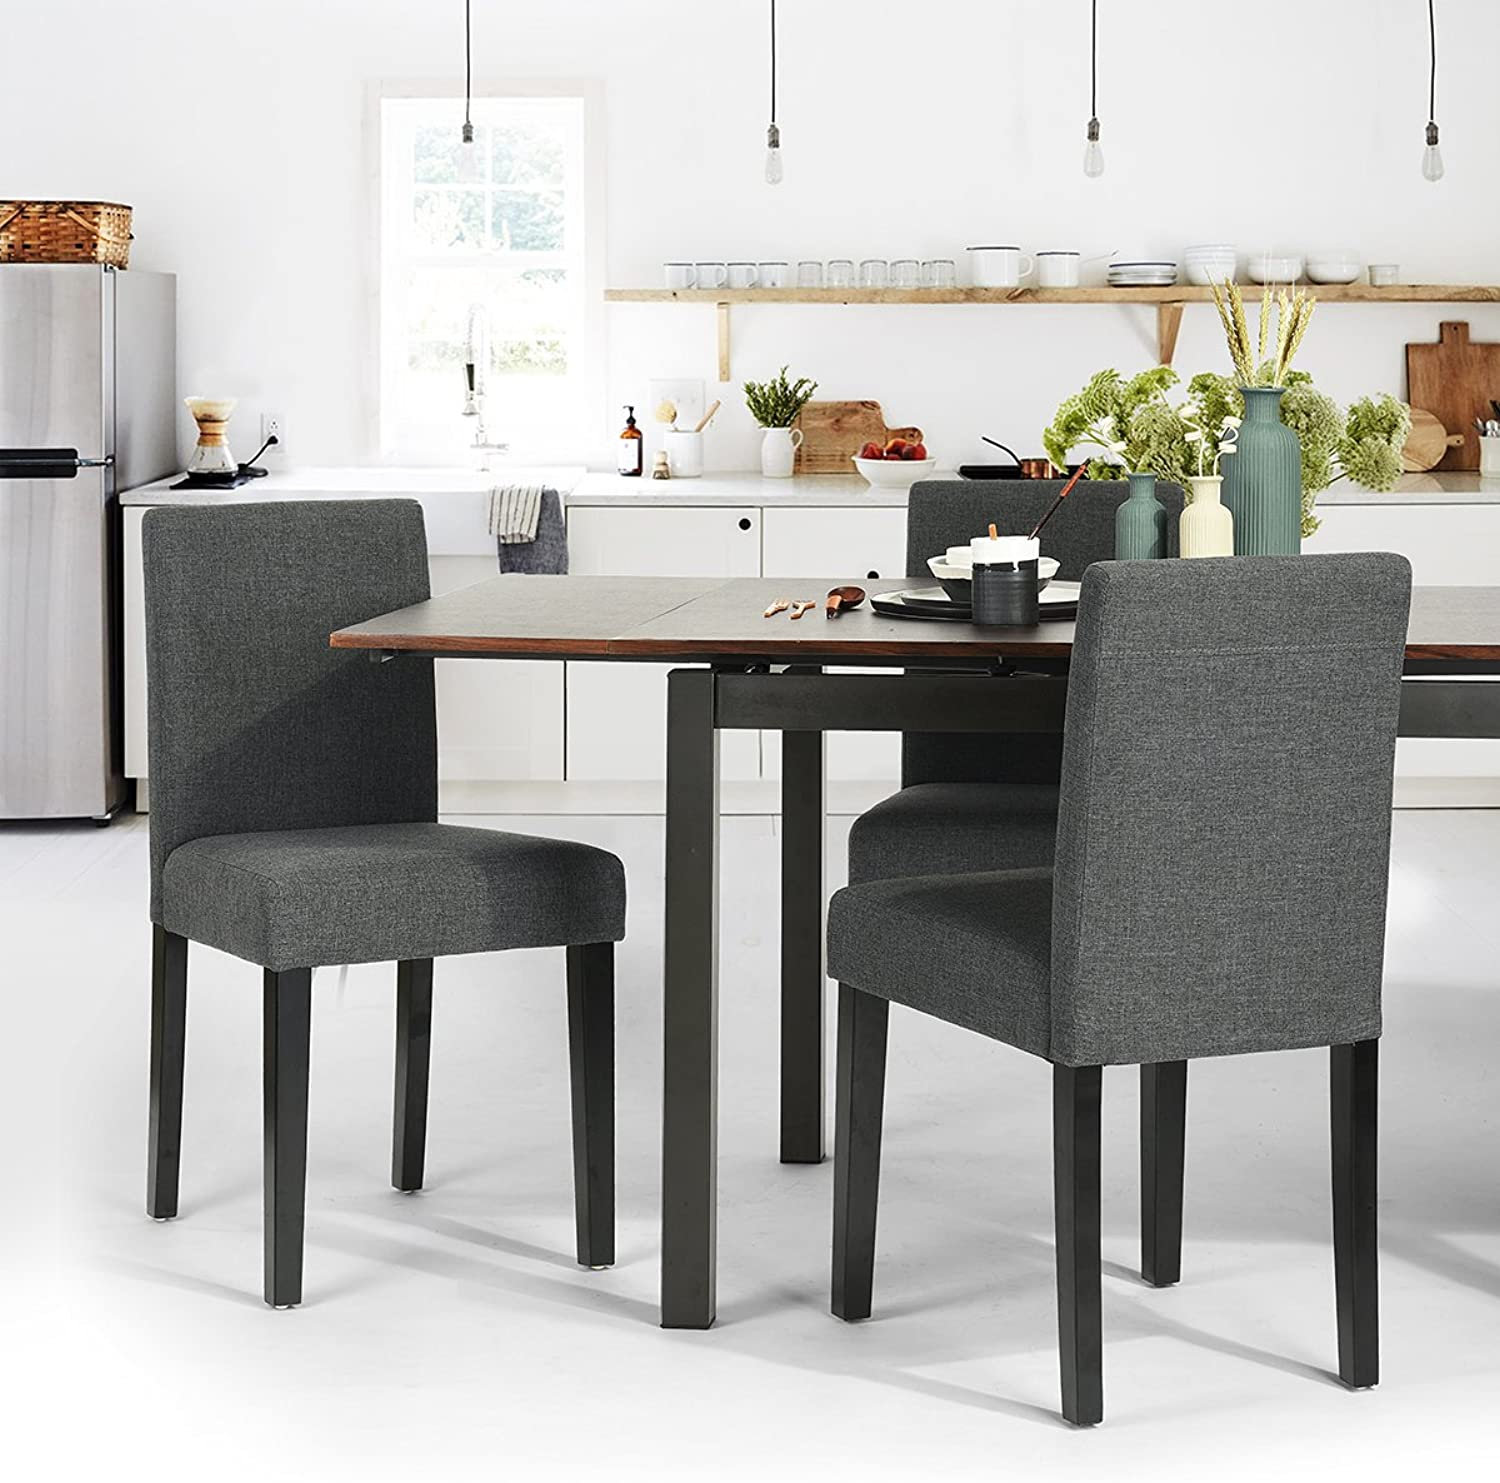 HOMEMAKE Set of 2 PU Leather Parson Dining Chairs, Home Dining Room Classic Padded Side Chairs Full KD Legs (Fabric Grey)